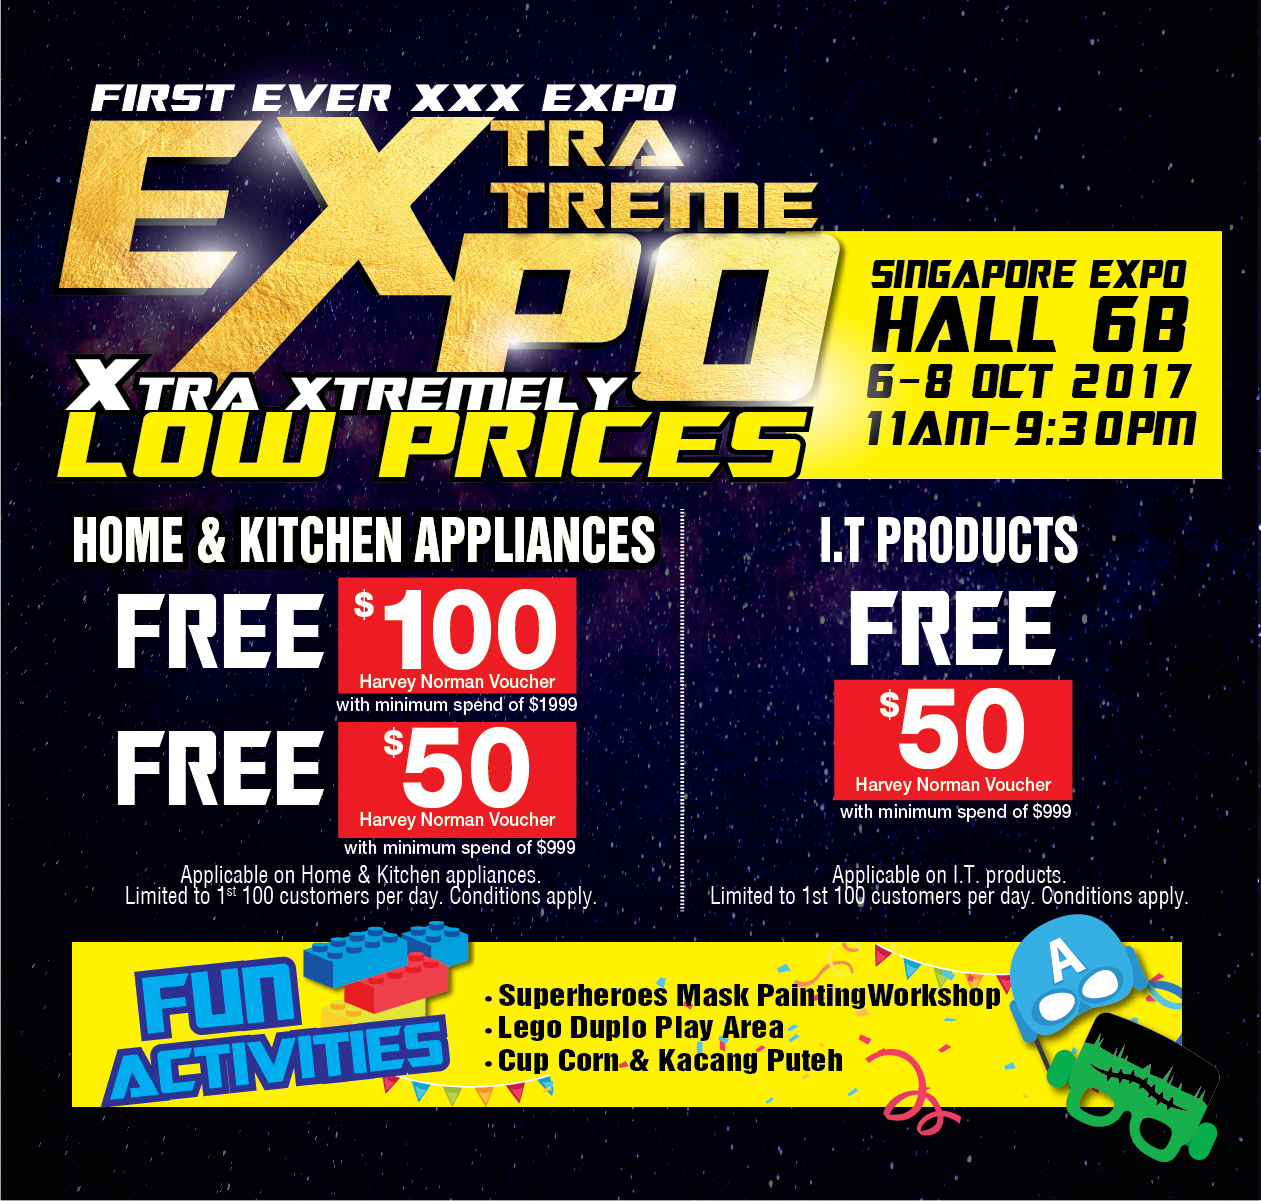 Harvey Norman Extra Extreme Expo   6 - 8 October 2017   11am - 9.30pm   Singapore Expo Hall 6